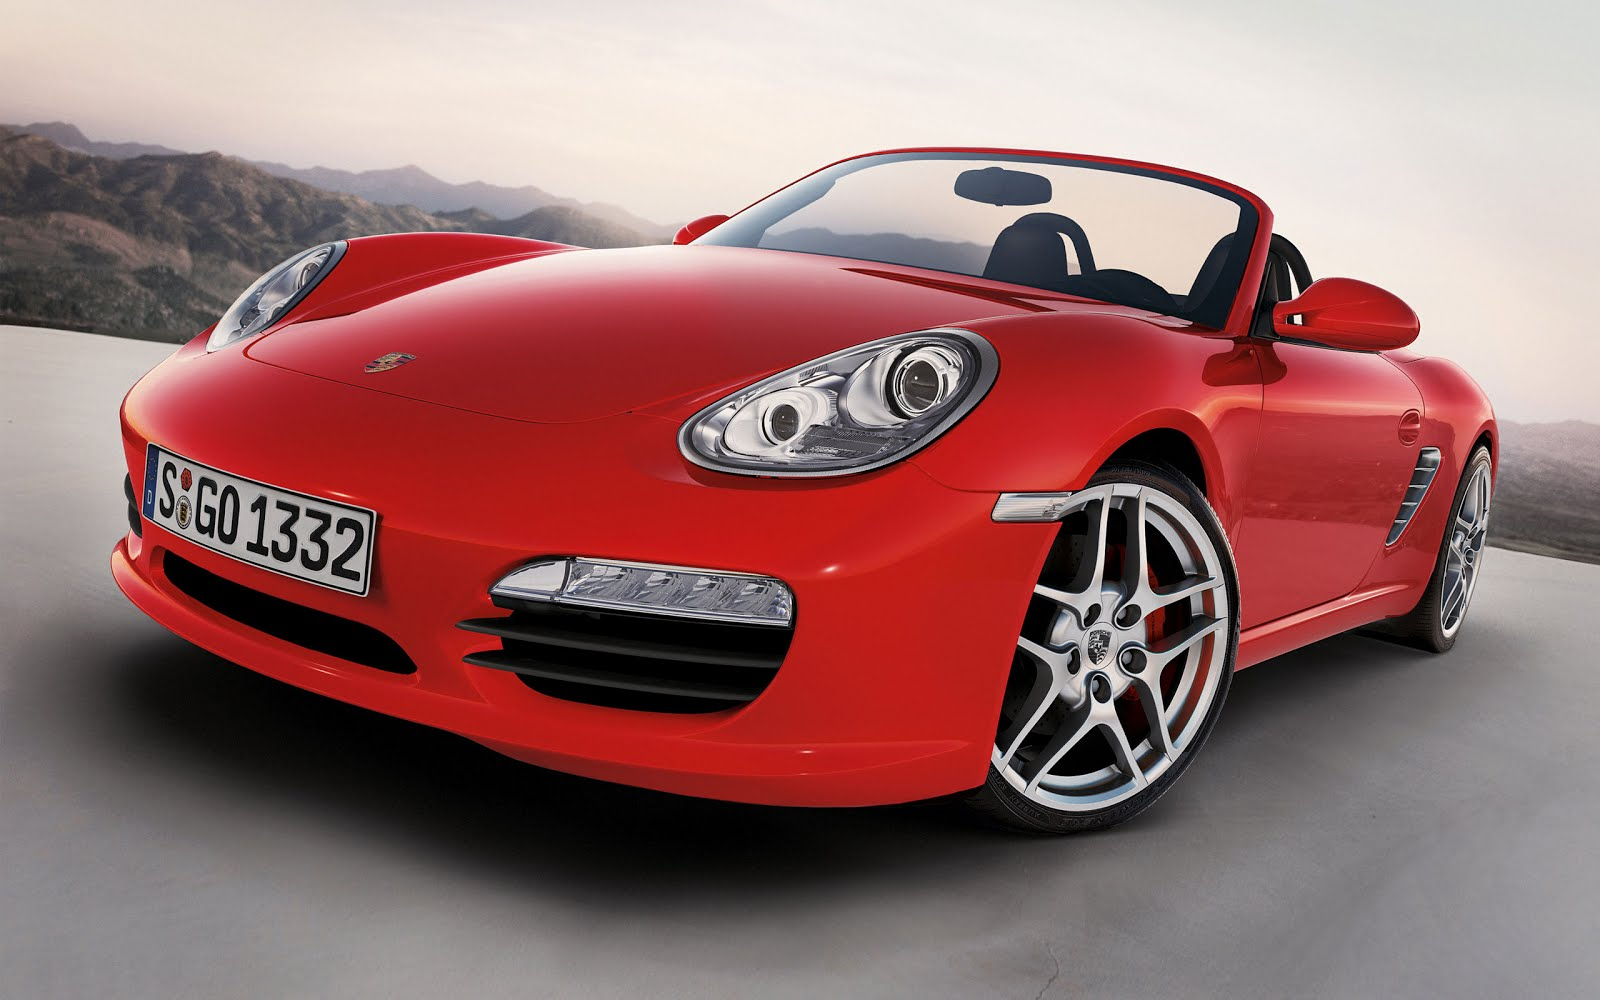 Cool Wallpaper High Resolution Car - PORSCHE-Cars-Wallpapers-High-Resolution-706433  HD_486474.jpg